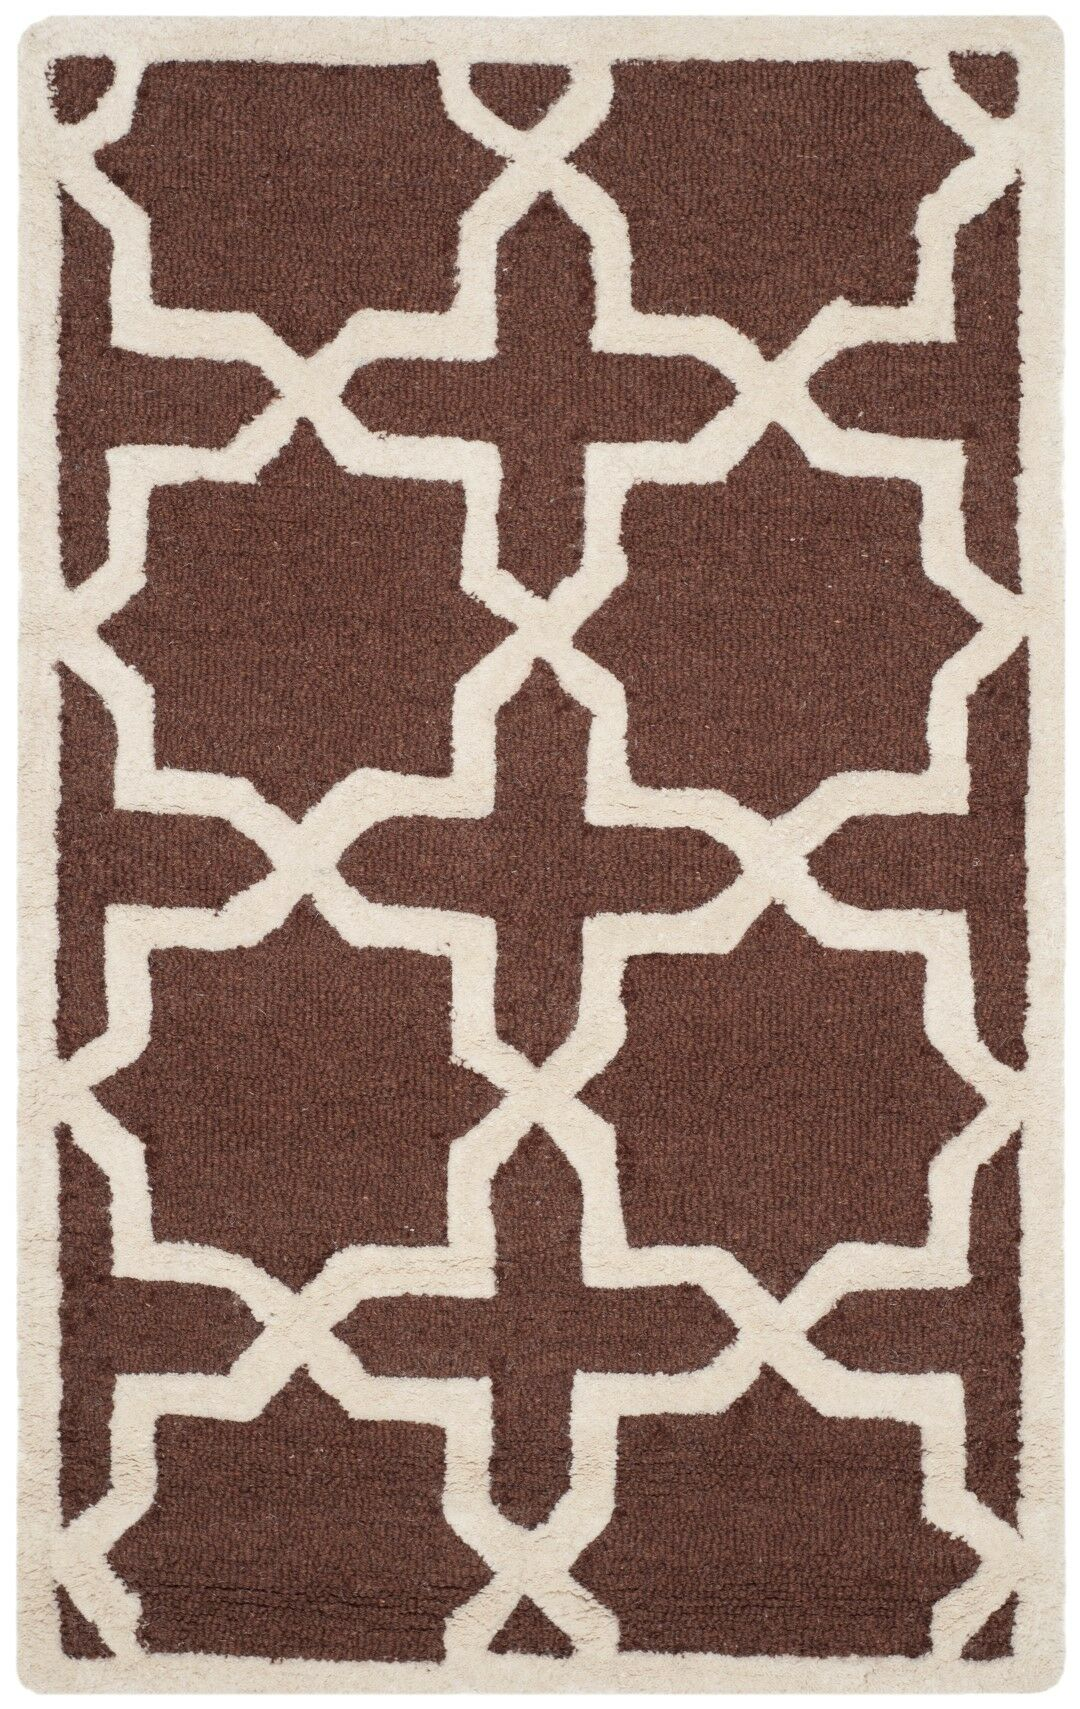 Brunswick Wool Brown/Ivory Area Rug Rug Size: Rectangle 5' x 8'